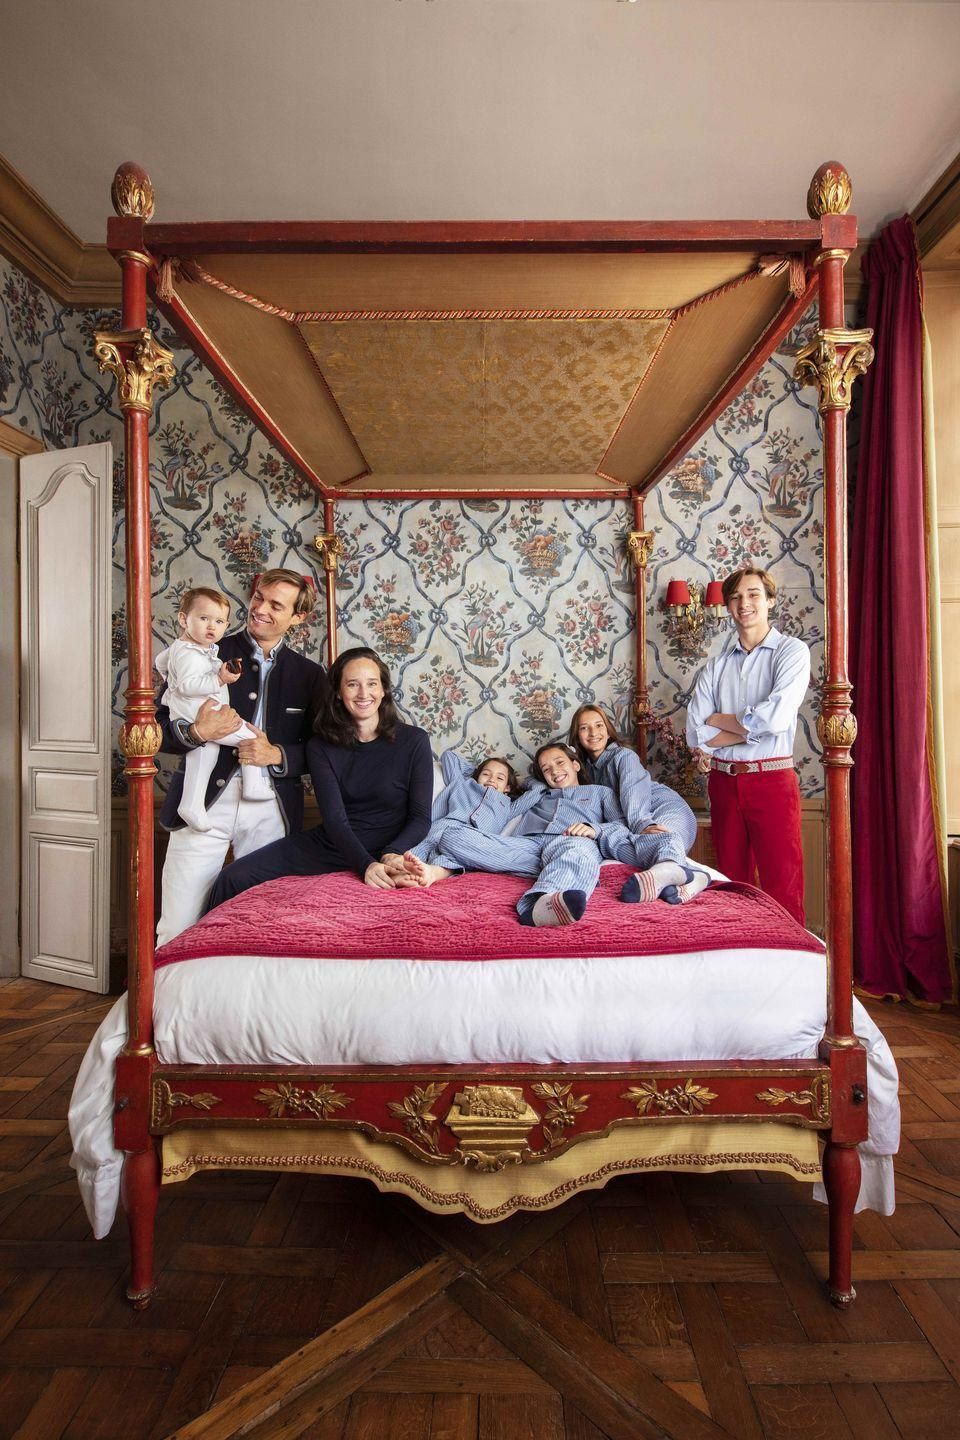 """<p>Preserving the spirit of his 17th-century apartment, decorator Micky Hurley kept the bedroom's original wallpaper, <a href=""""https://www.zuber.fr/en"""" rel=""""nofollow noopener"""" target=""""_blank"""" data-ylk=""""slk:Zuber's"""" class=""""link rapid-noclick-resp"""">Zuber's</a> iconic Petit Parque, in tact. The celebrated print serves as a colorful background from a antique four-poster bed. </p>"""